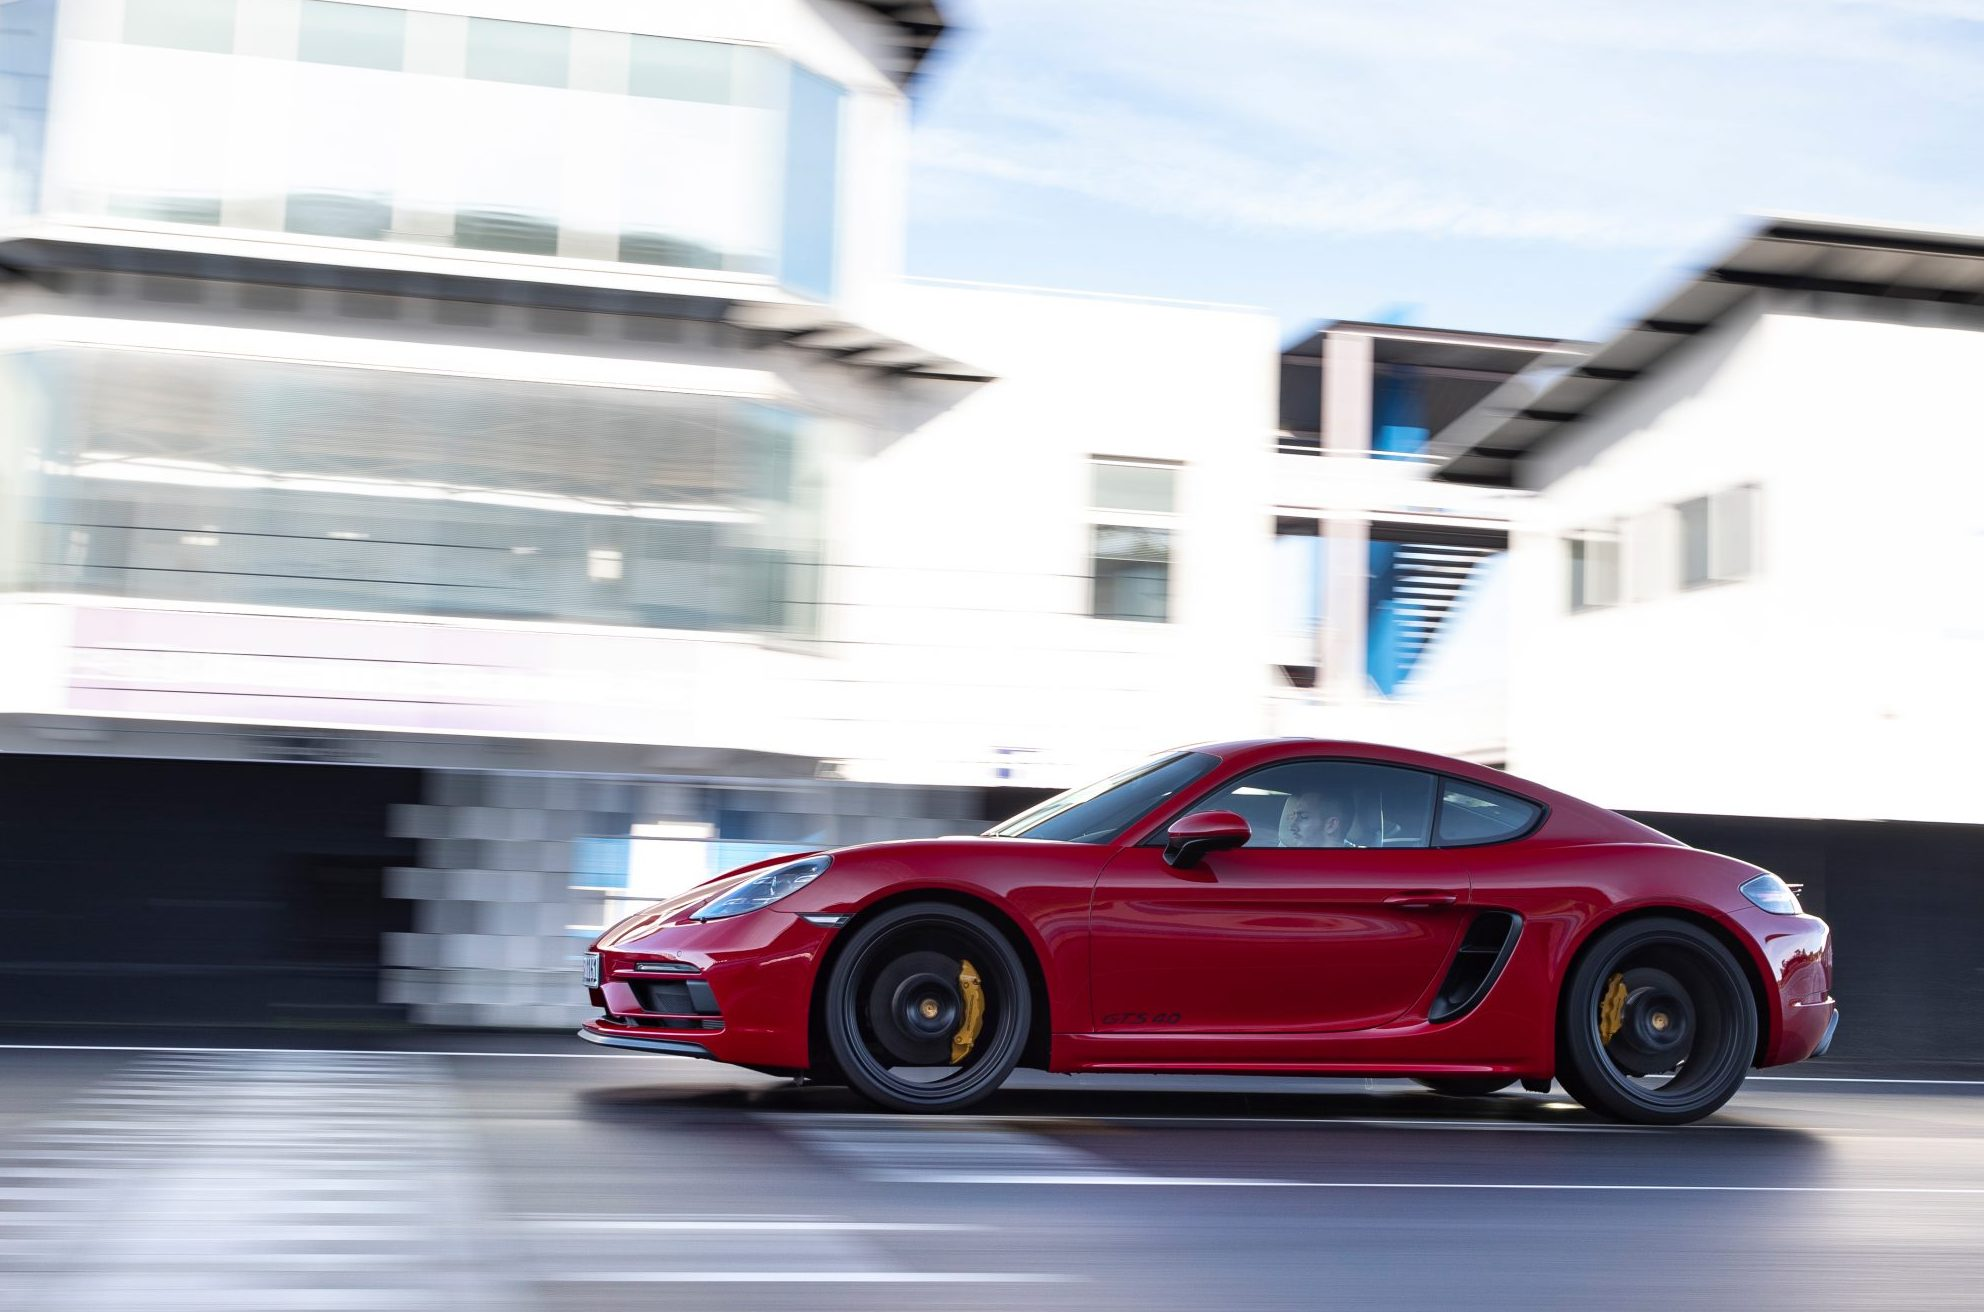 Porsche Cayman GTS review: who needs a GT4 when you can have this?